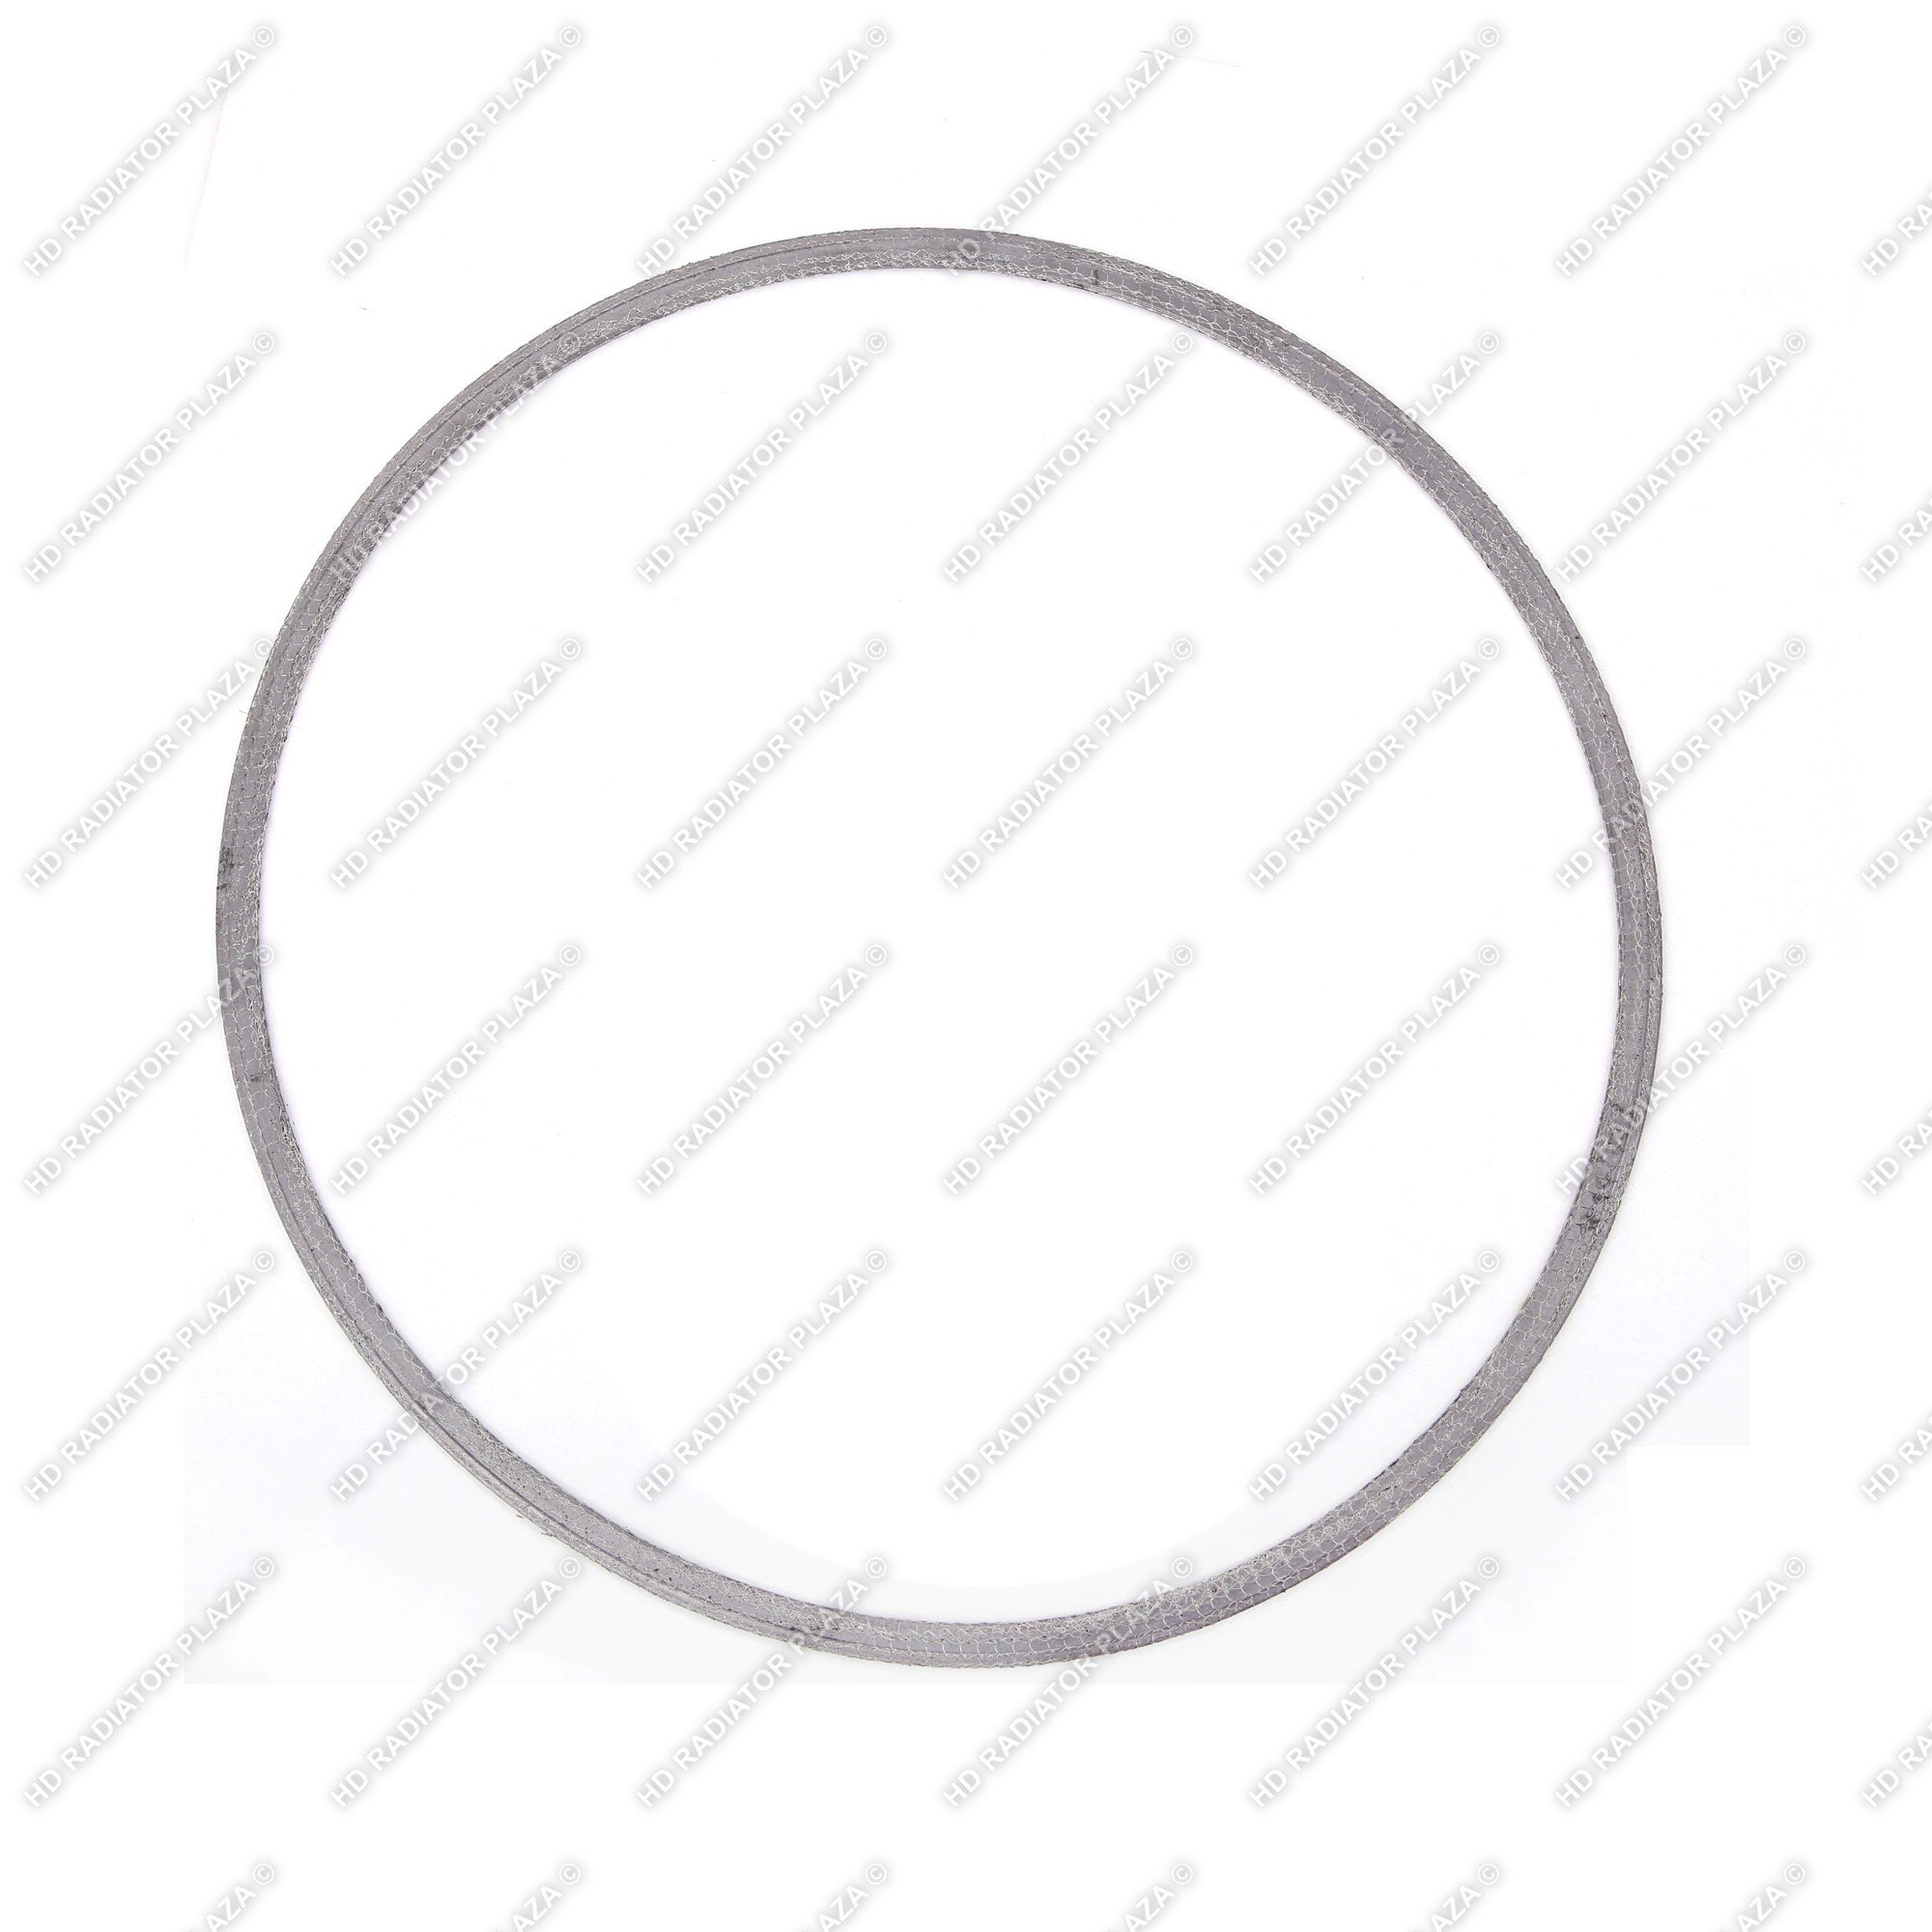 "4501001 - GASKET - International 2601233C1 Woven 13.625""OD x 12.4375"" ID"